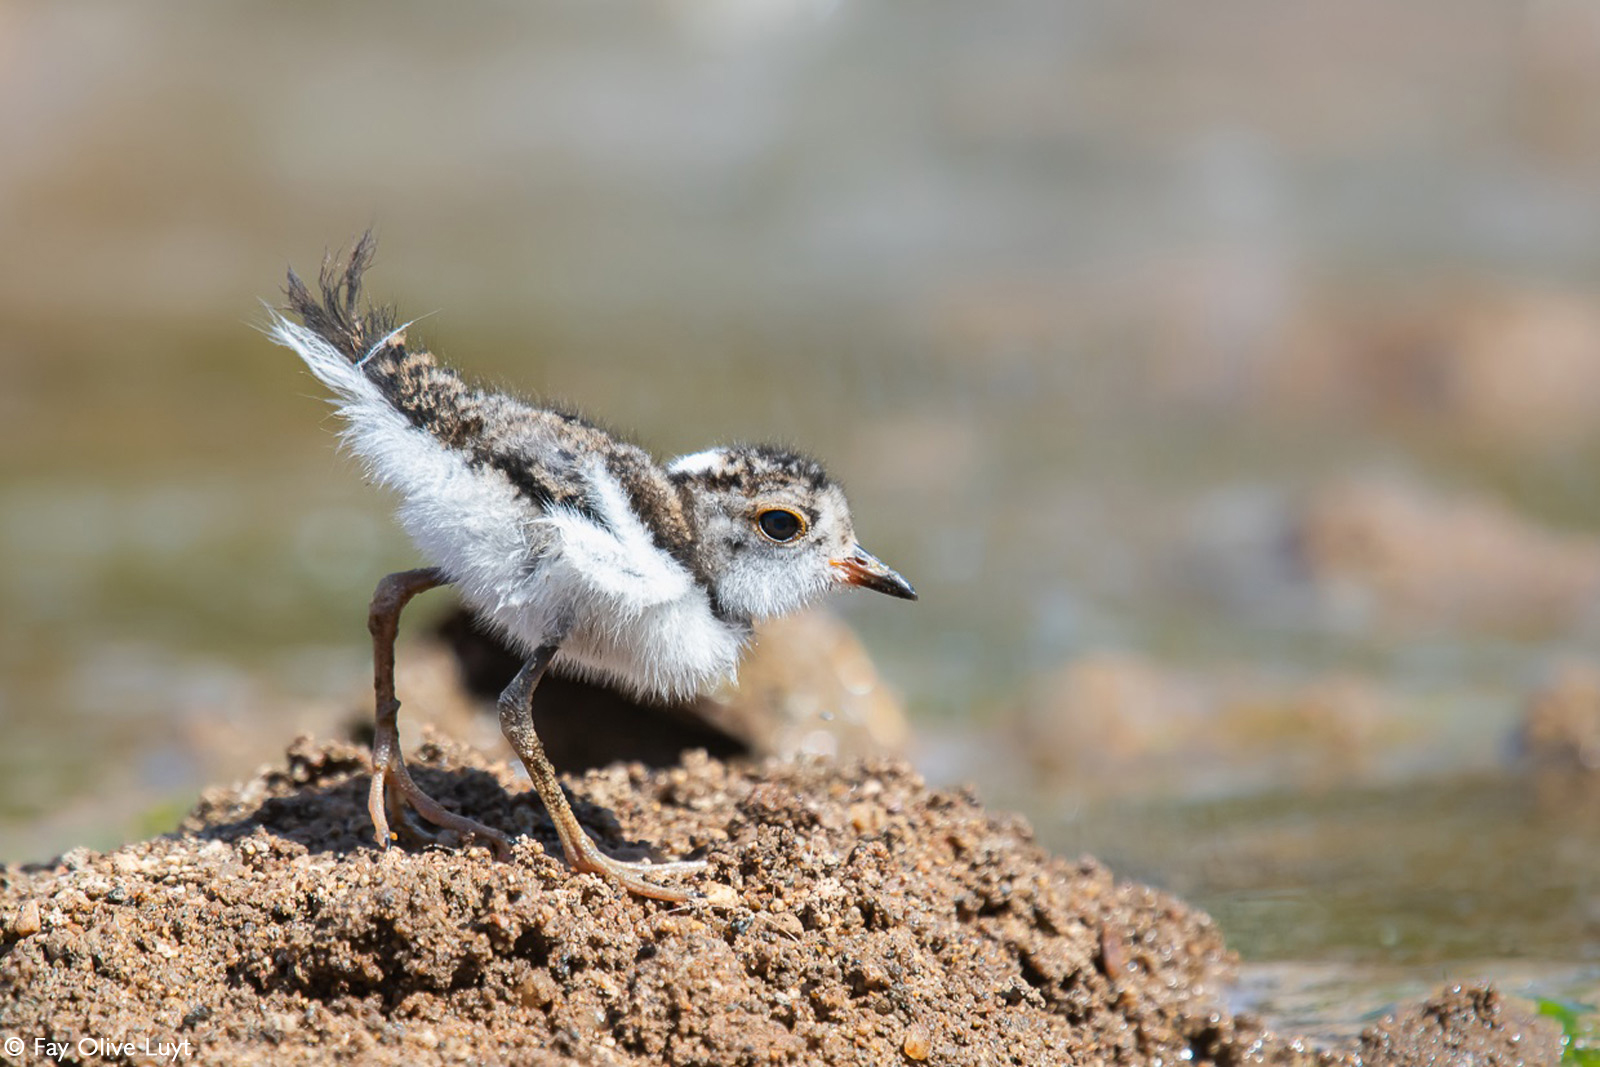 A three-banded plover chick. Kruger National Park, South Africa © Fay Olive Luyt